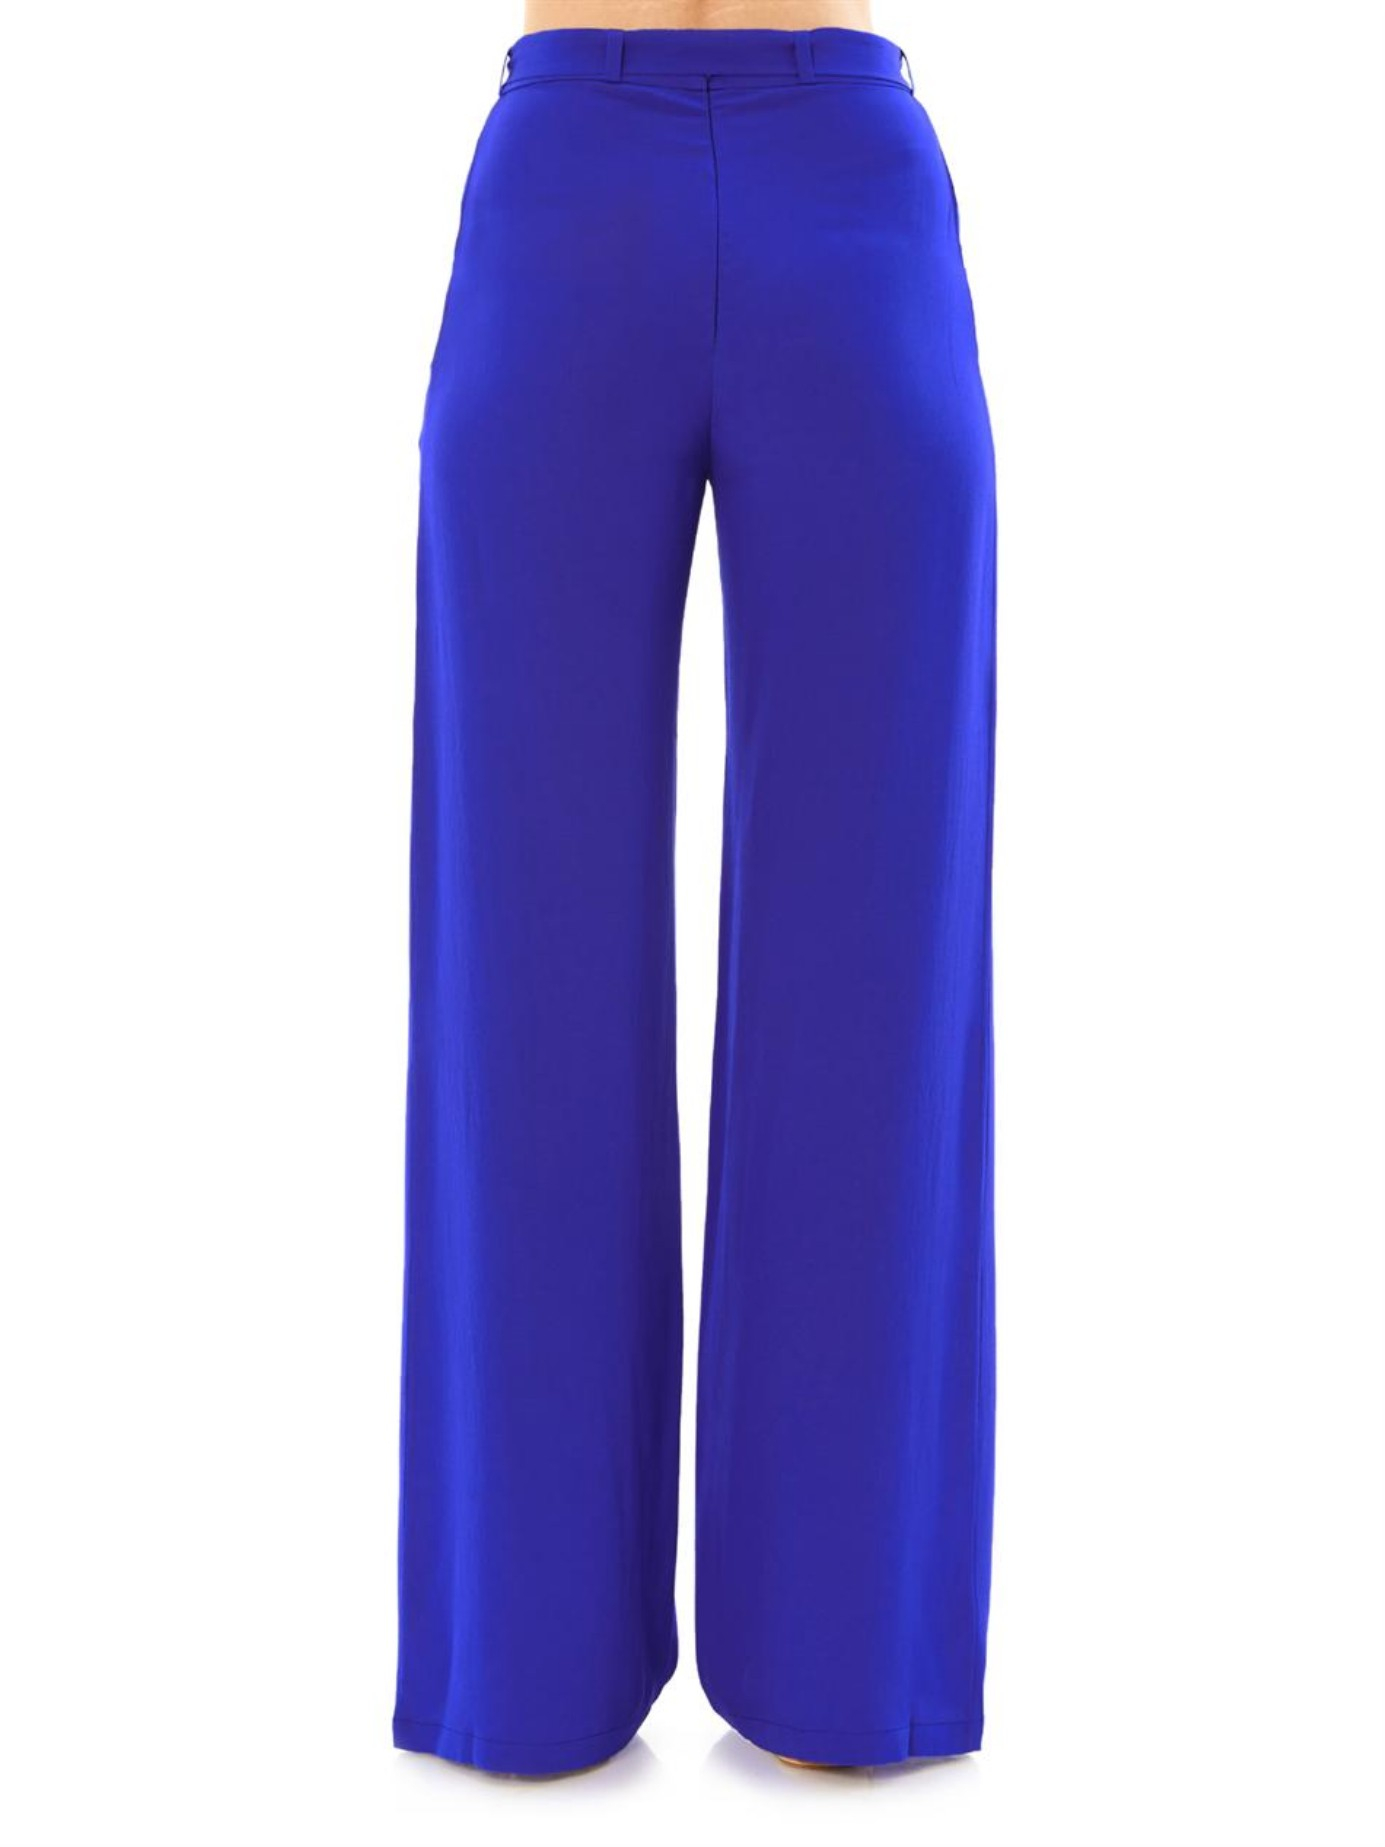 Product# KH long rise big leg slacks Light Blue ~ Sky Blue Wide Leg Dress Pants Pleated Slacks baggy dress trousers $ Product# SK brown color shade Long Sleeve 2pc Set including Matching Wide Leg Dress Pants $